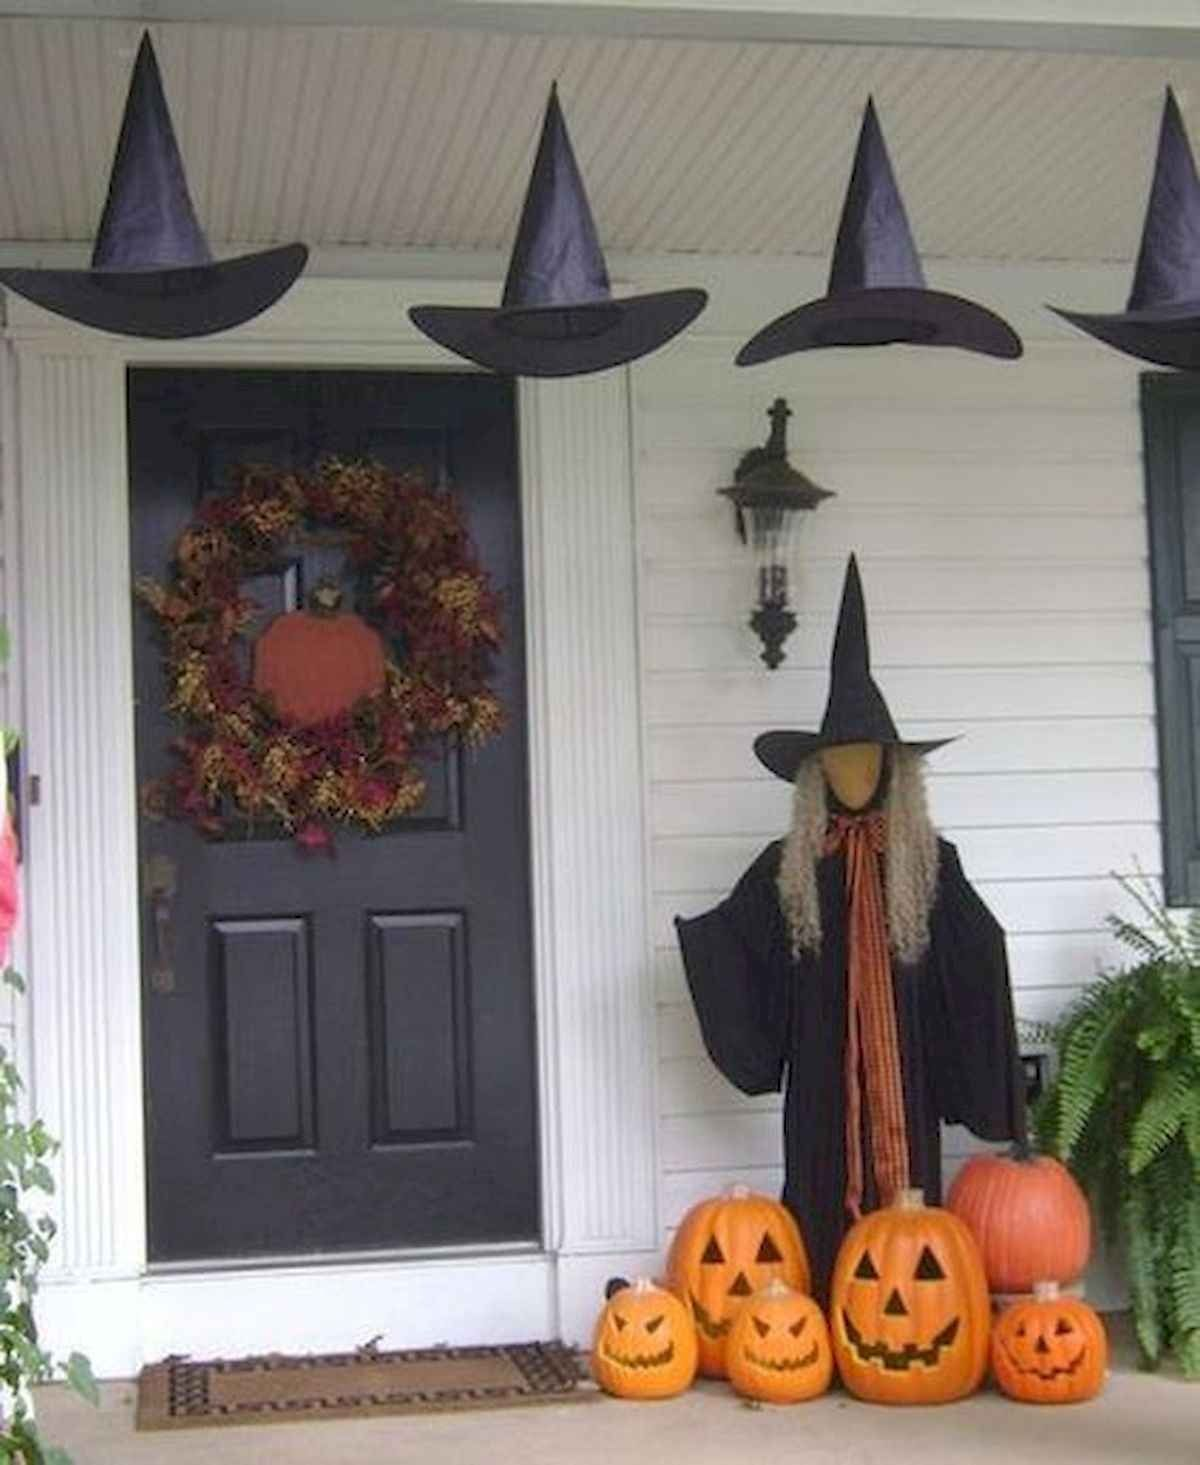 90 Awesome DIY Halloween Decorations Ideas in 2020